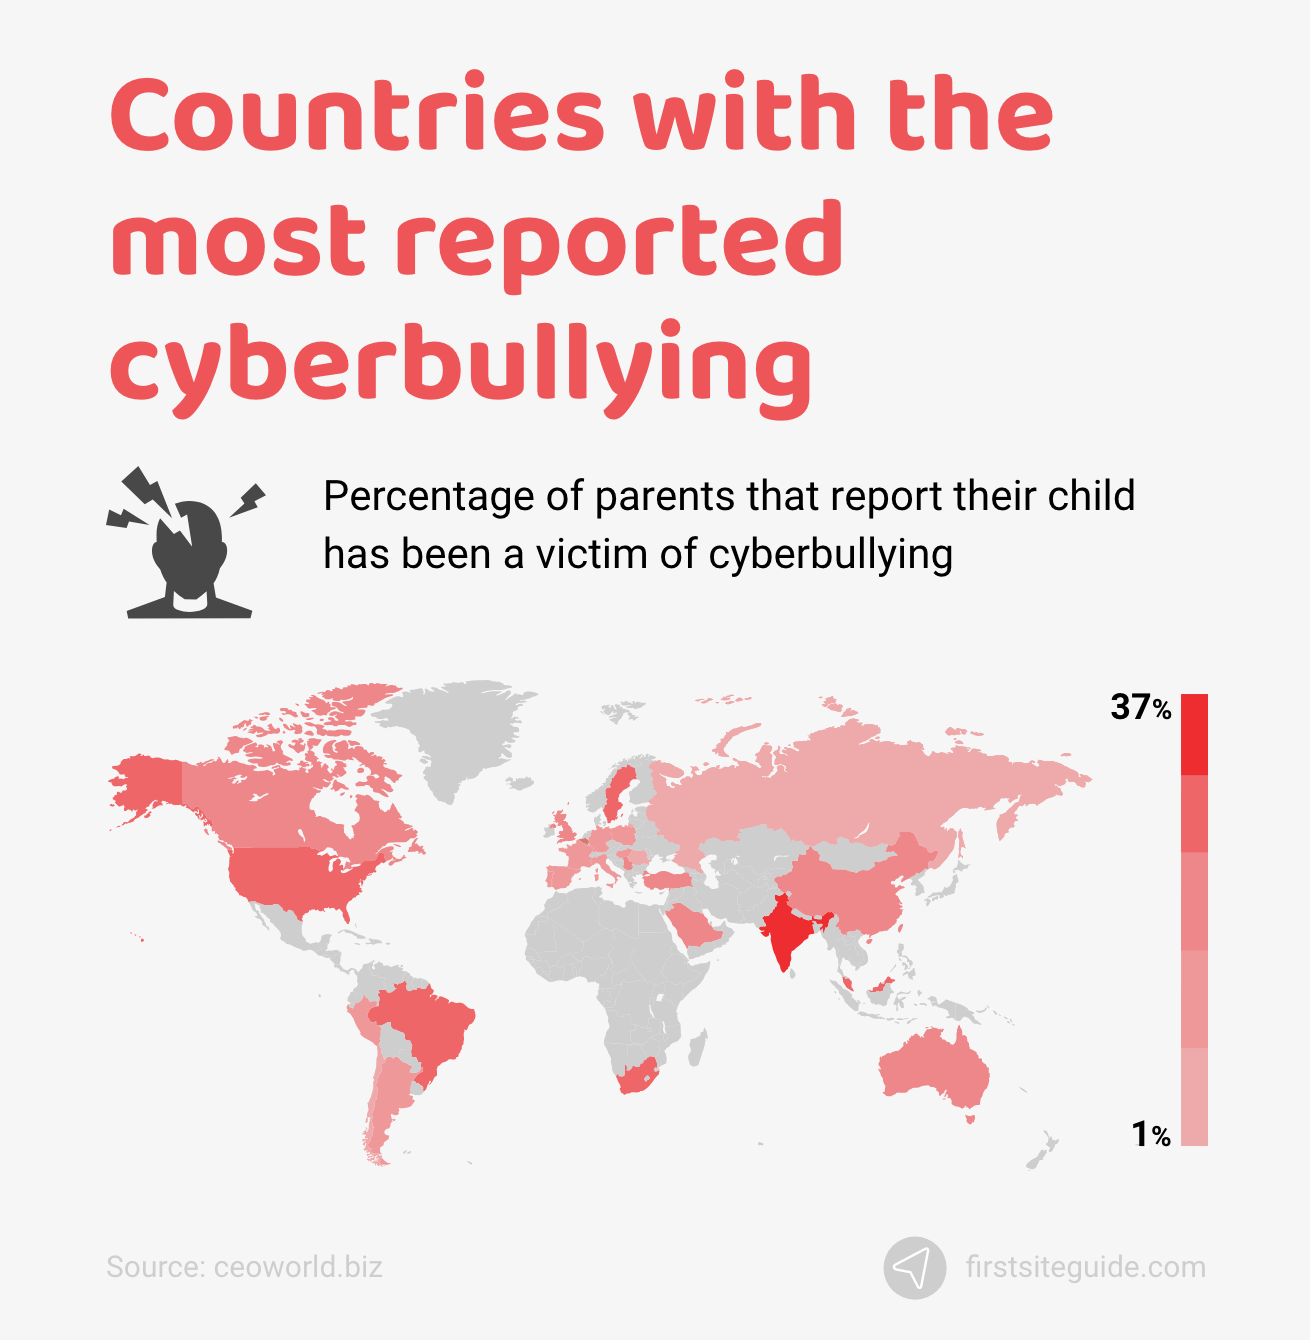 Countries with the most reported cyberbullying